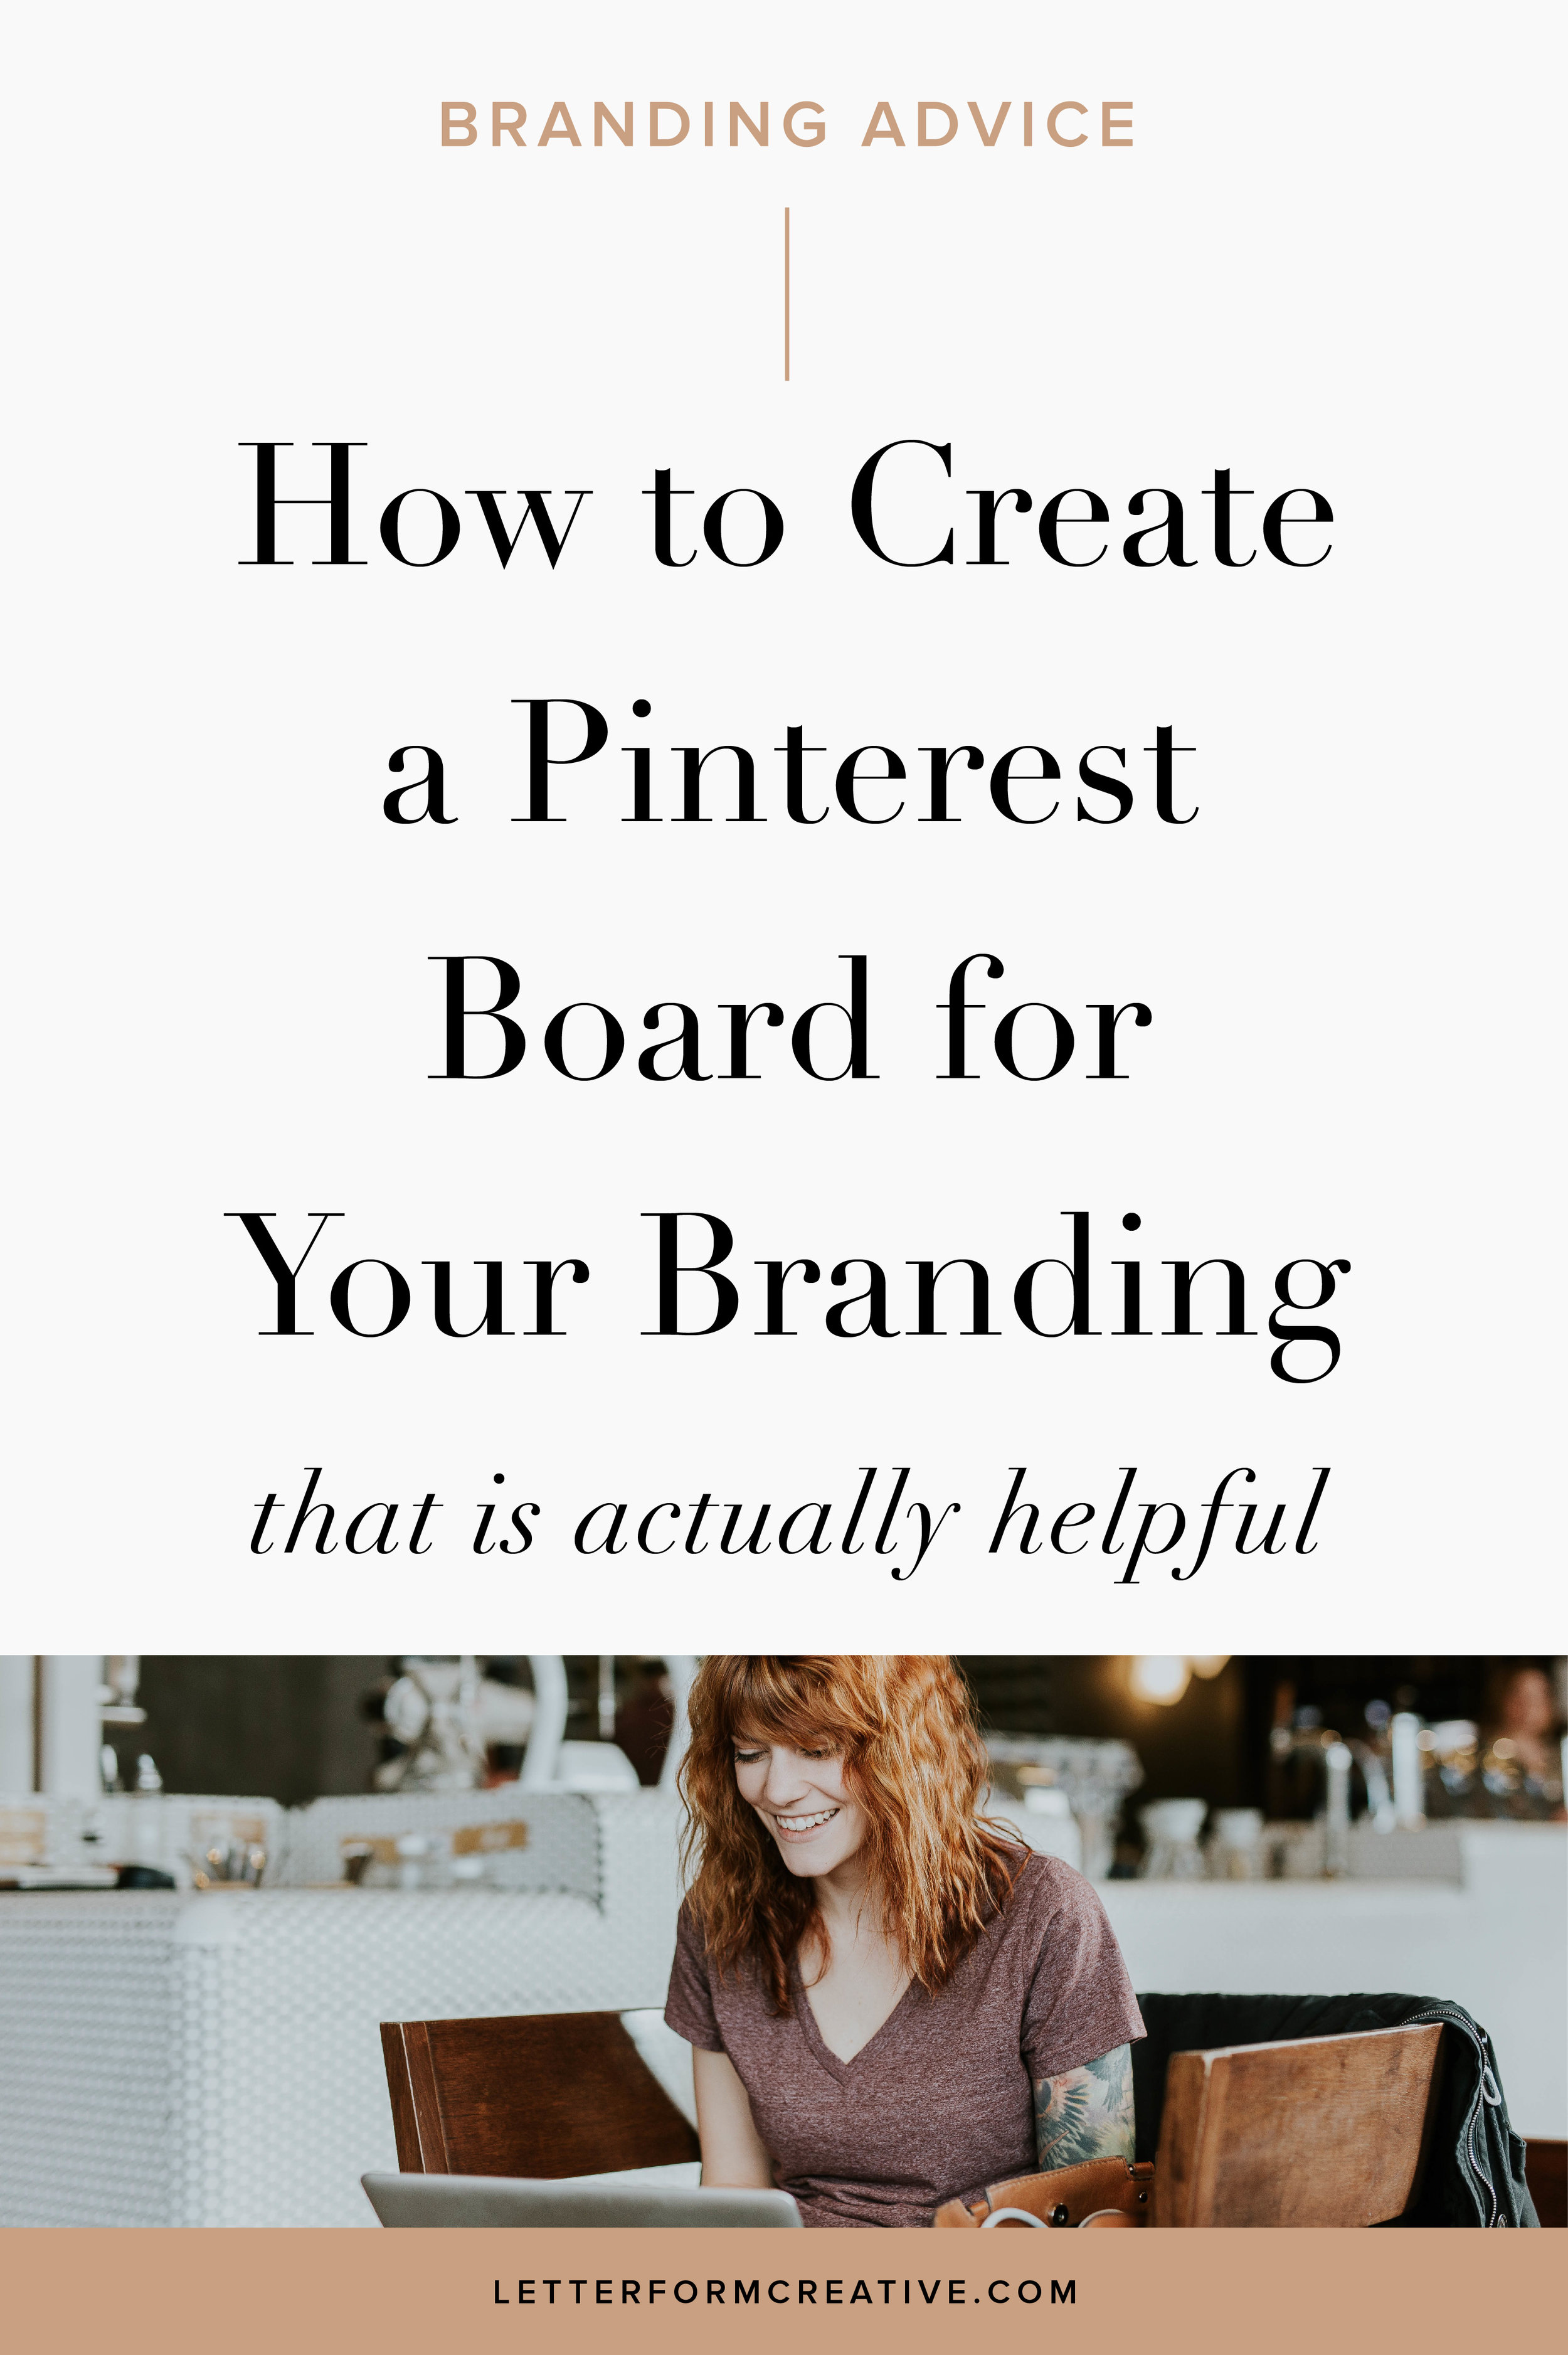 For all small business owners designing your brand identity yourself, read this blog post for some helpful ideas! Find out how to create a Pinterest Mood Board that will actually aid in the design of your logo and branding. With simple, step-by-step guidelines and tips, you will learn how to curate a board that is full of the inspiration you need to guide your personal or corporate branding.